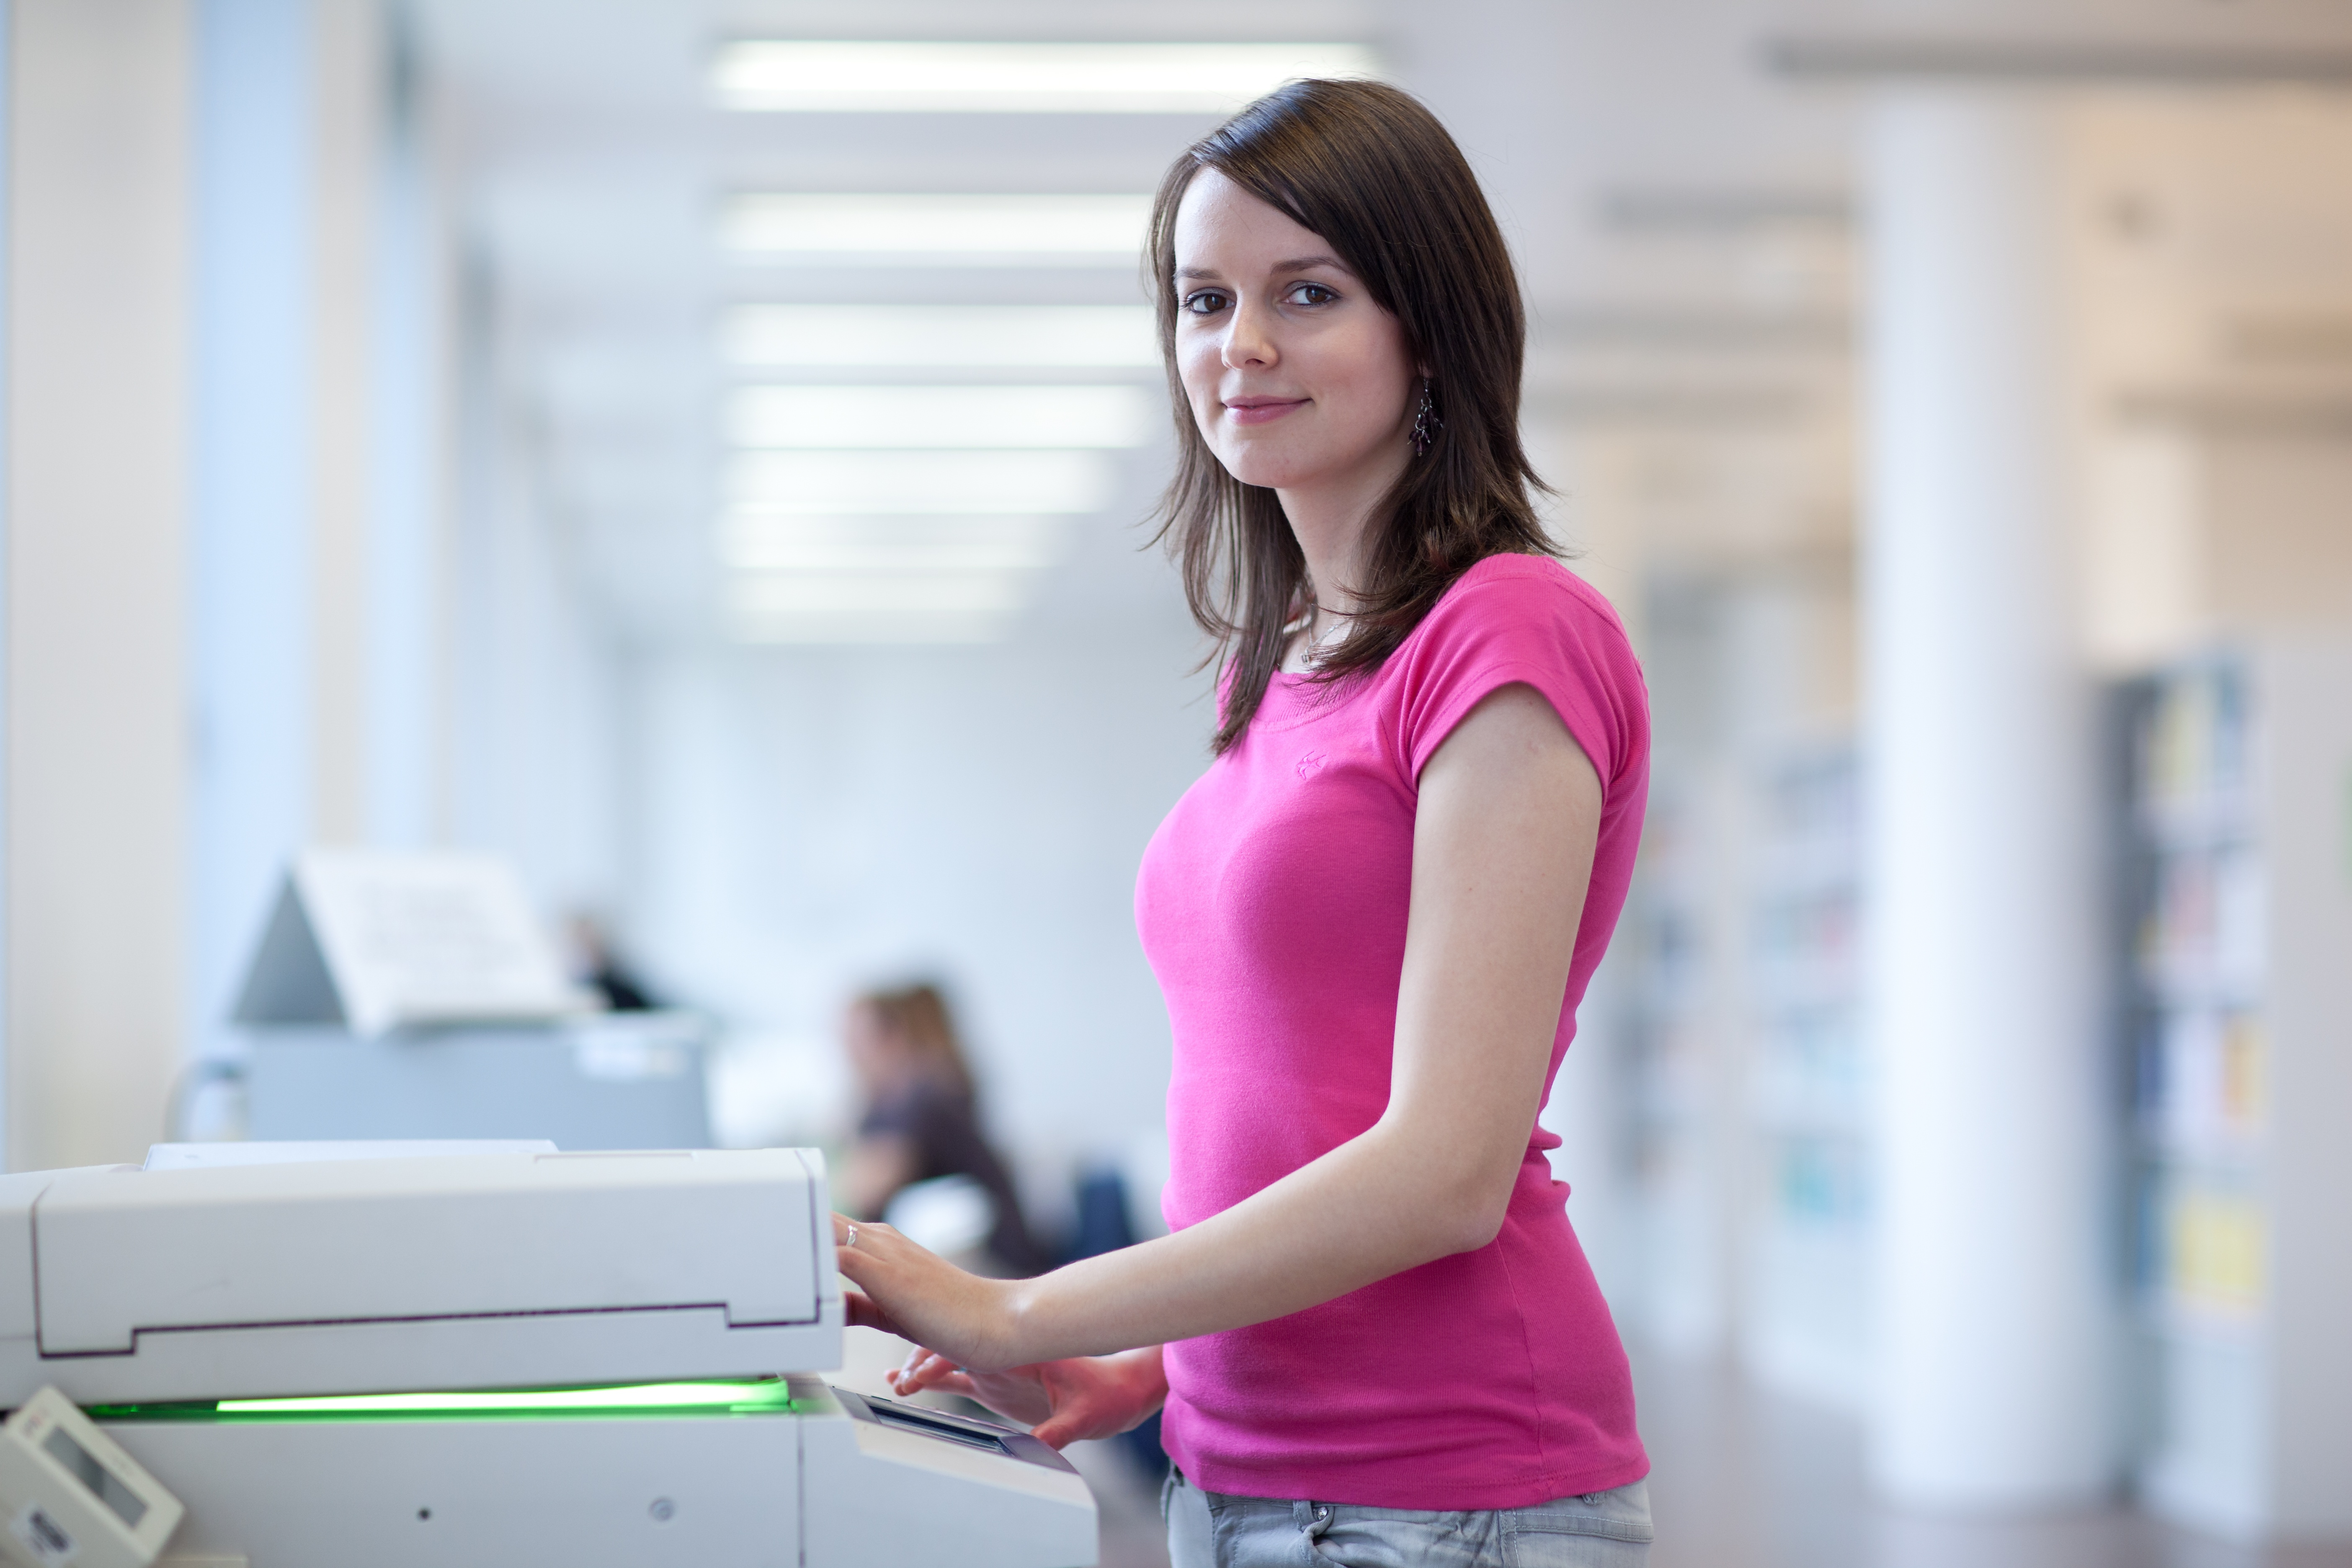 Pages per minute for a printer or office copier